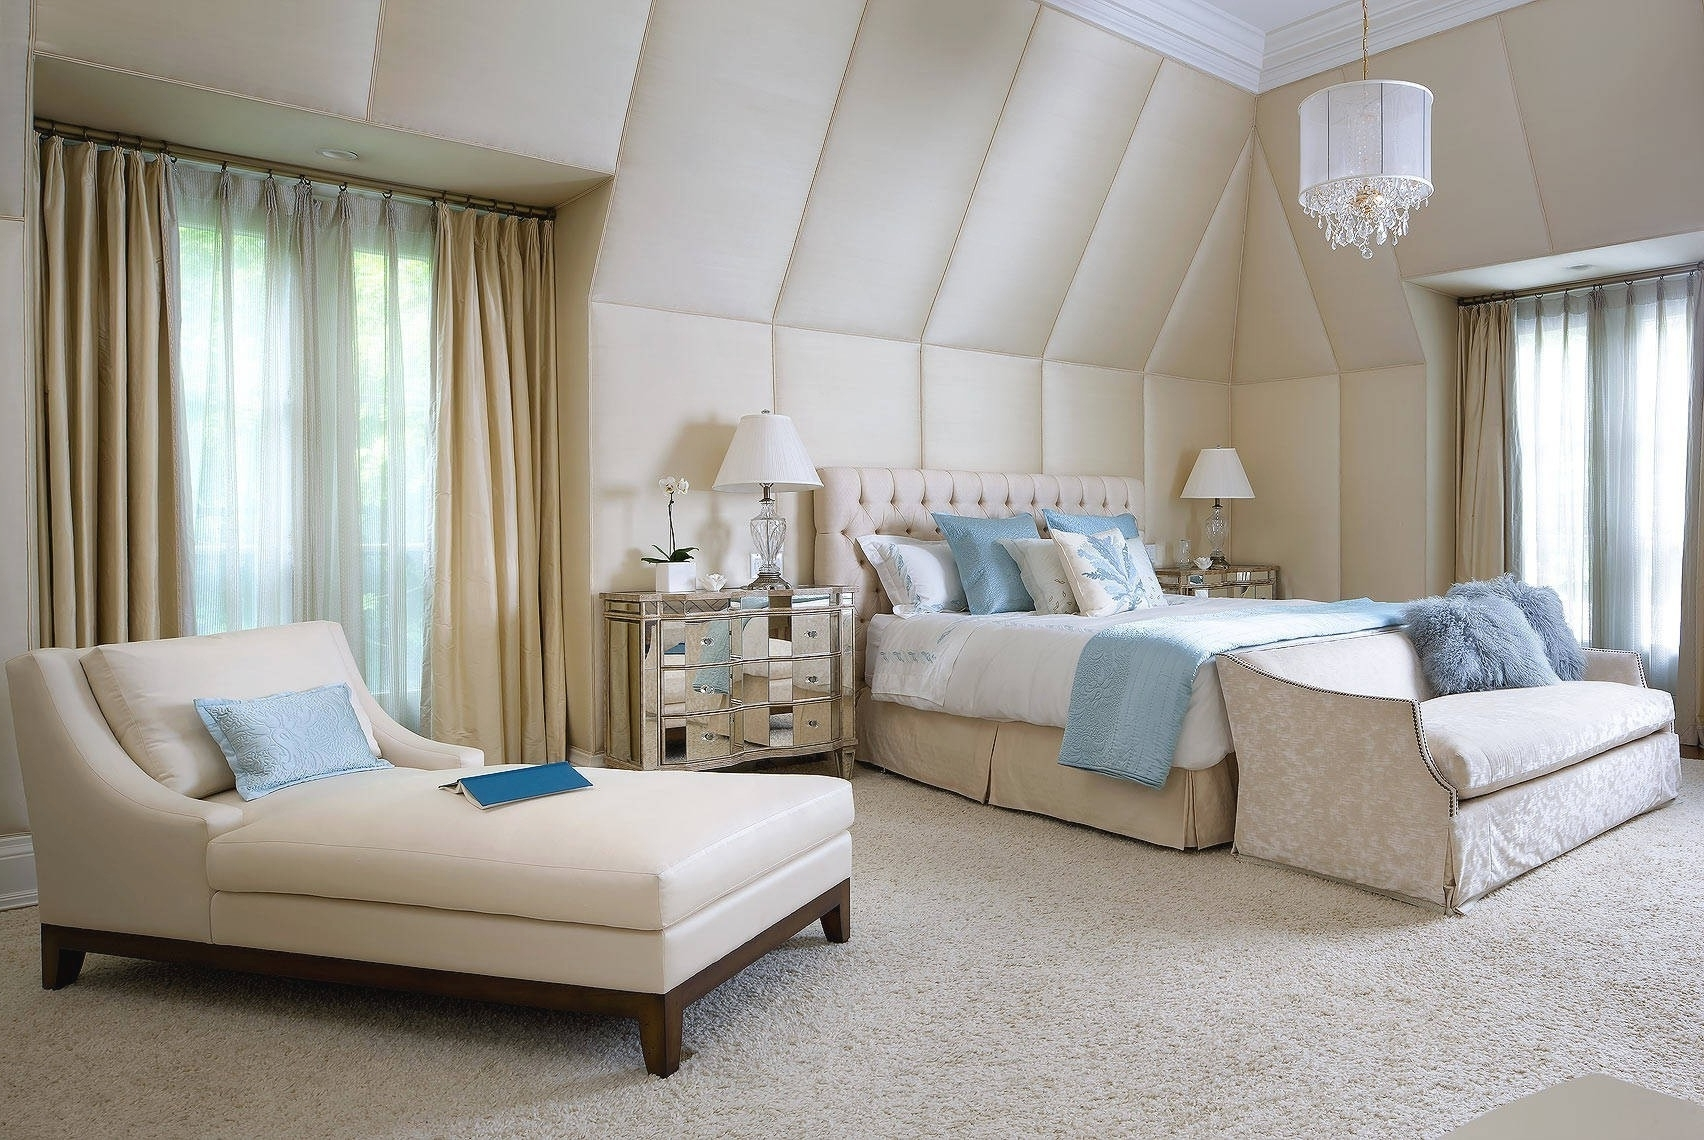 Fullsize Of Lounge Chairs For Bedrooms